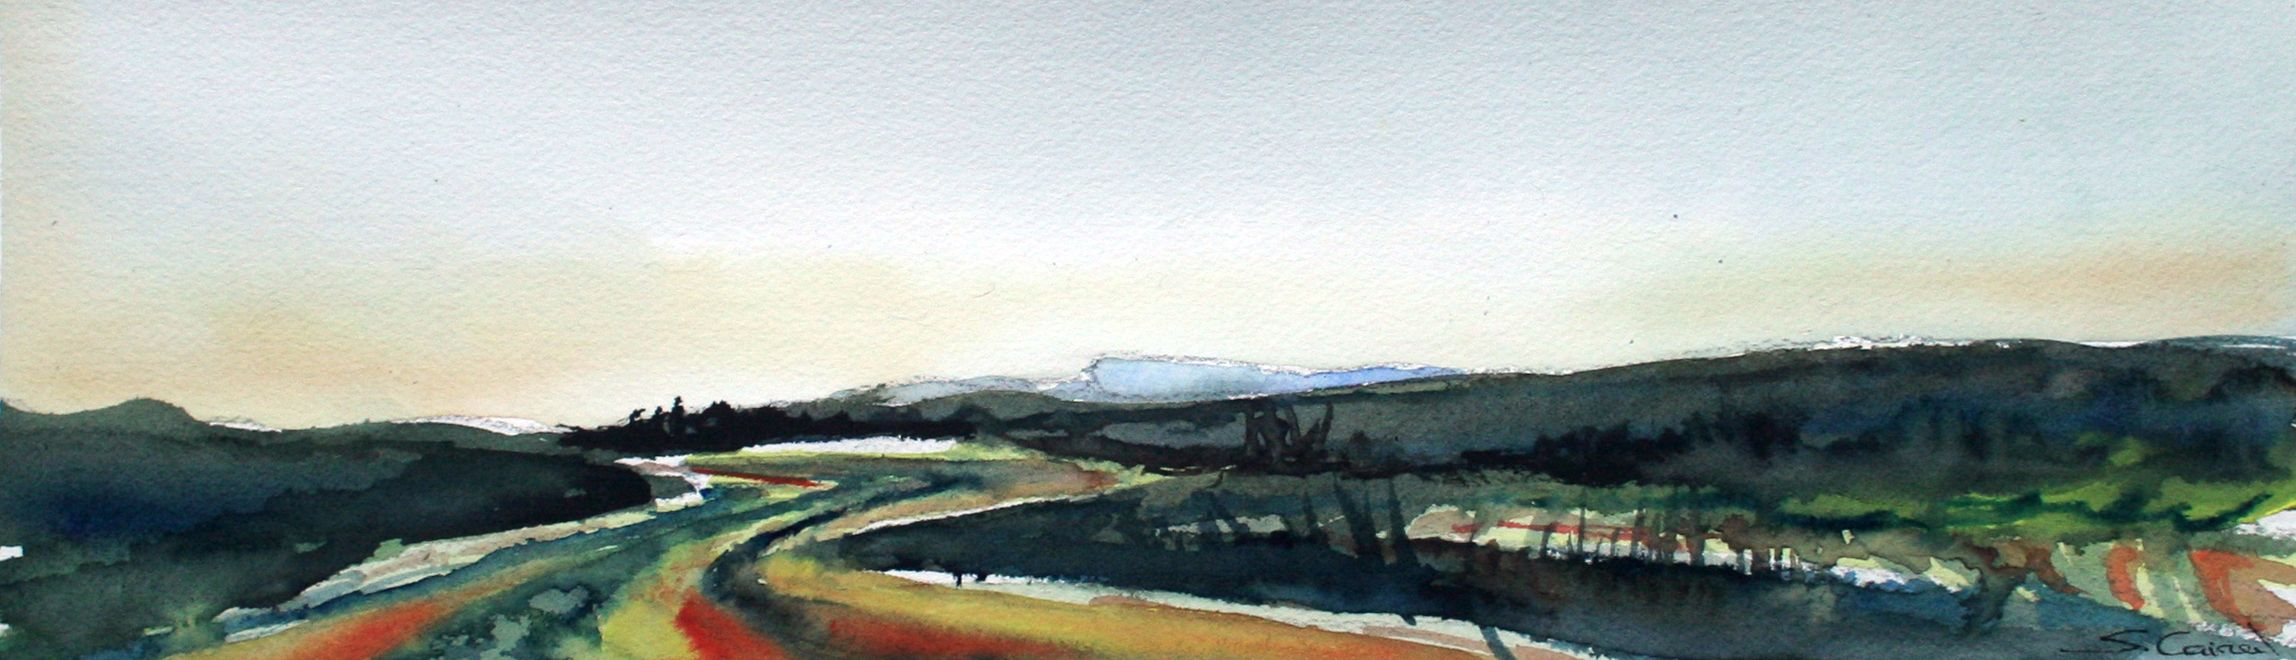 Original watercolor landscape of Empordà (Catalonia, Costa Brava) by Silvia Cairol